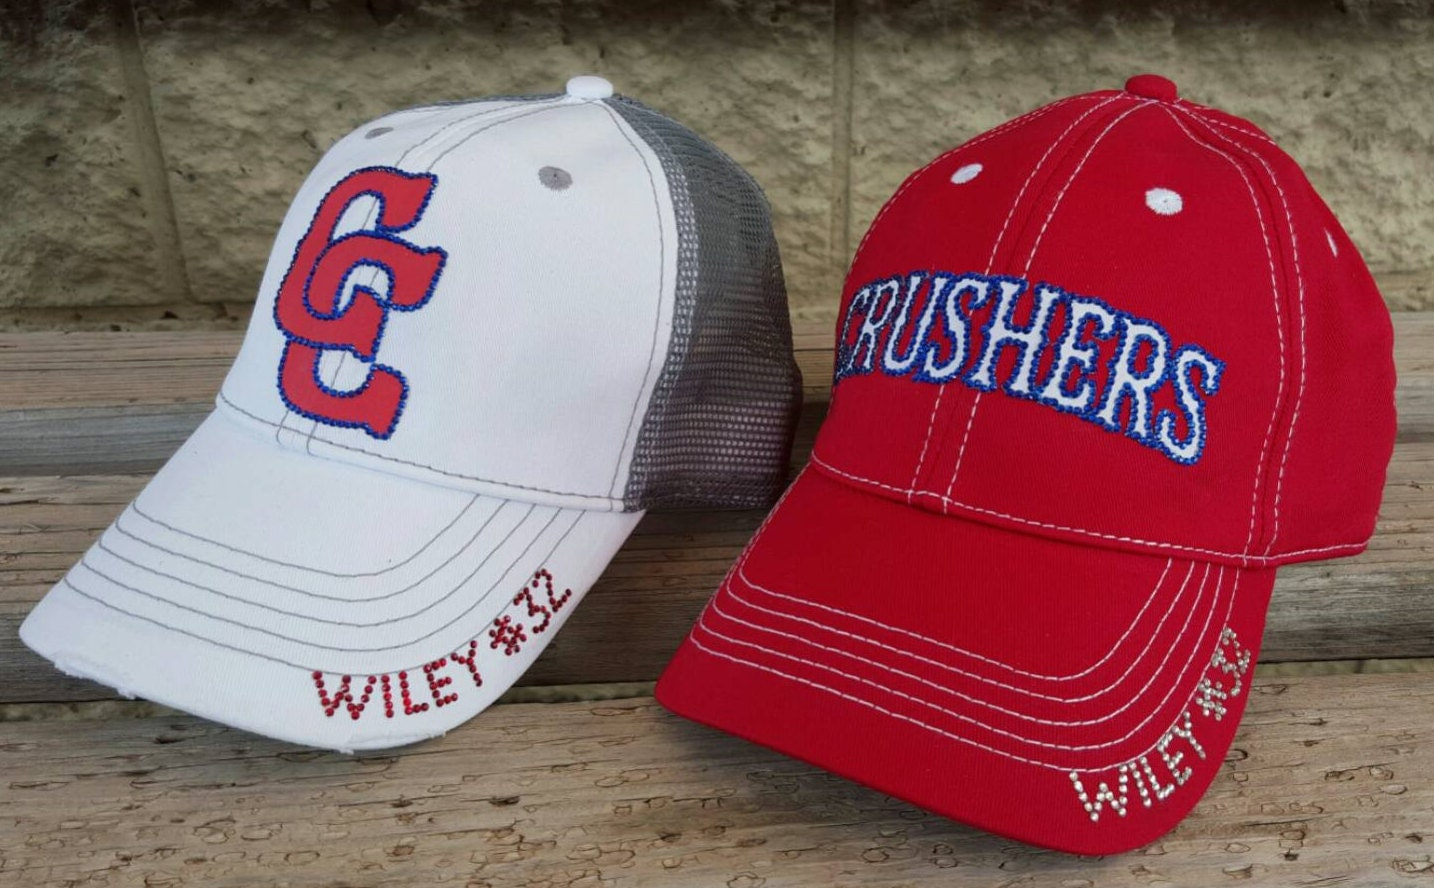 custom baseball hat crushers team hat either logo or name